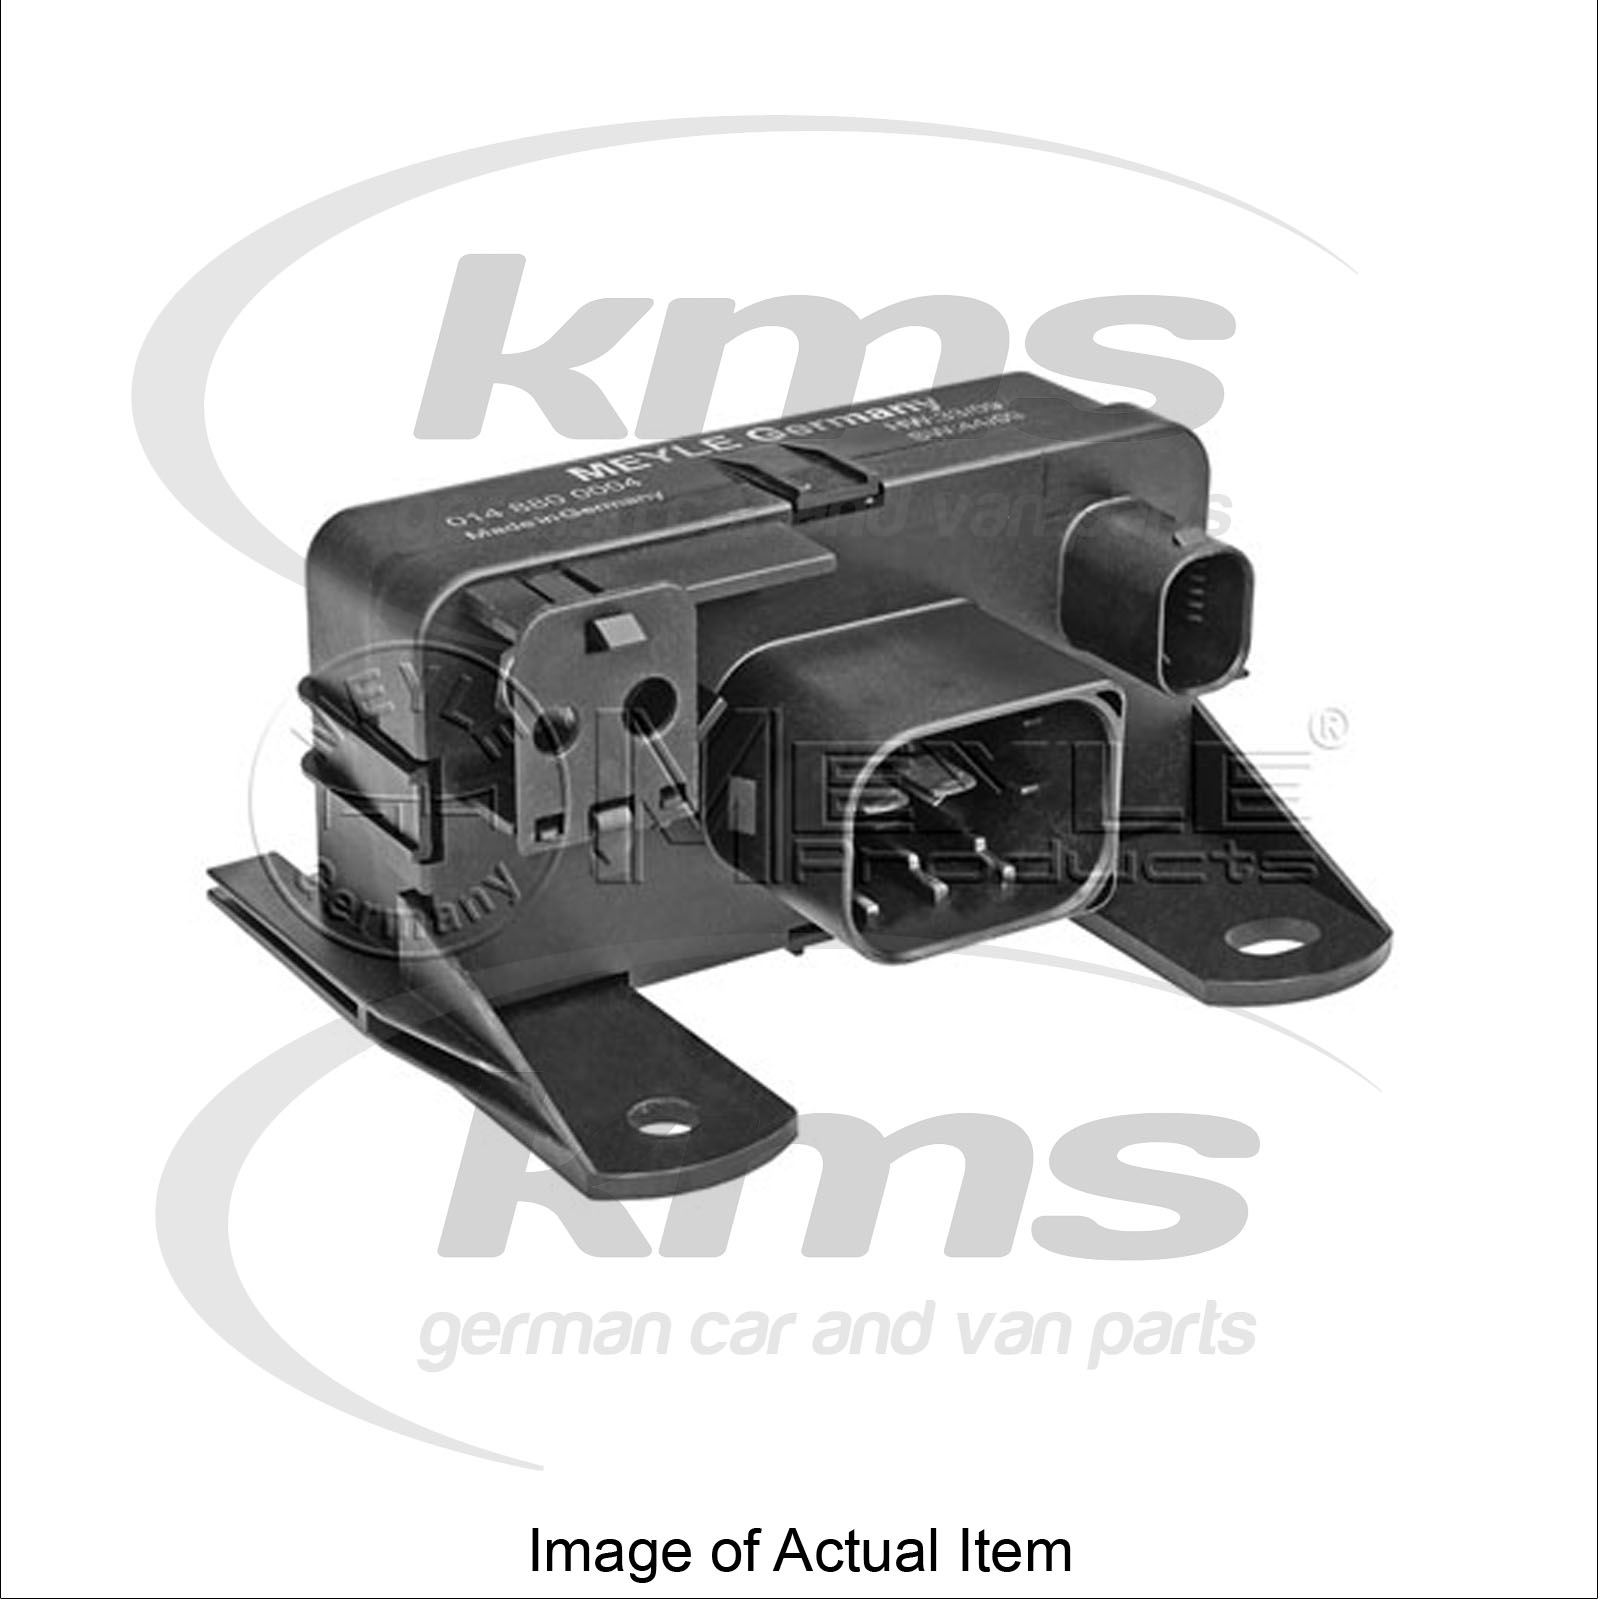 CONTROL UNIT For GLOW PLUG SYSTEM MERCEDES E-CLASS (W211